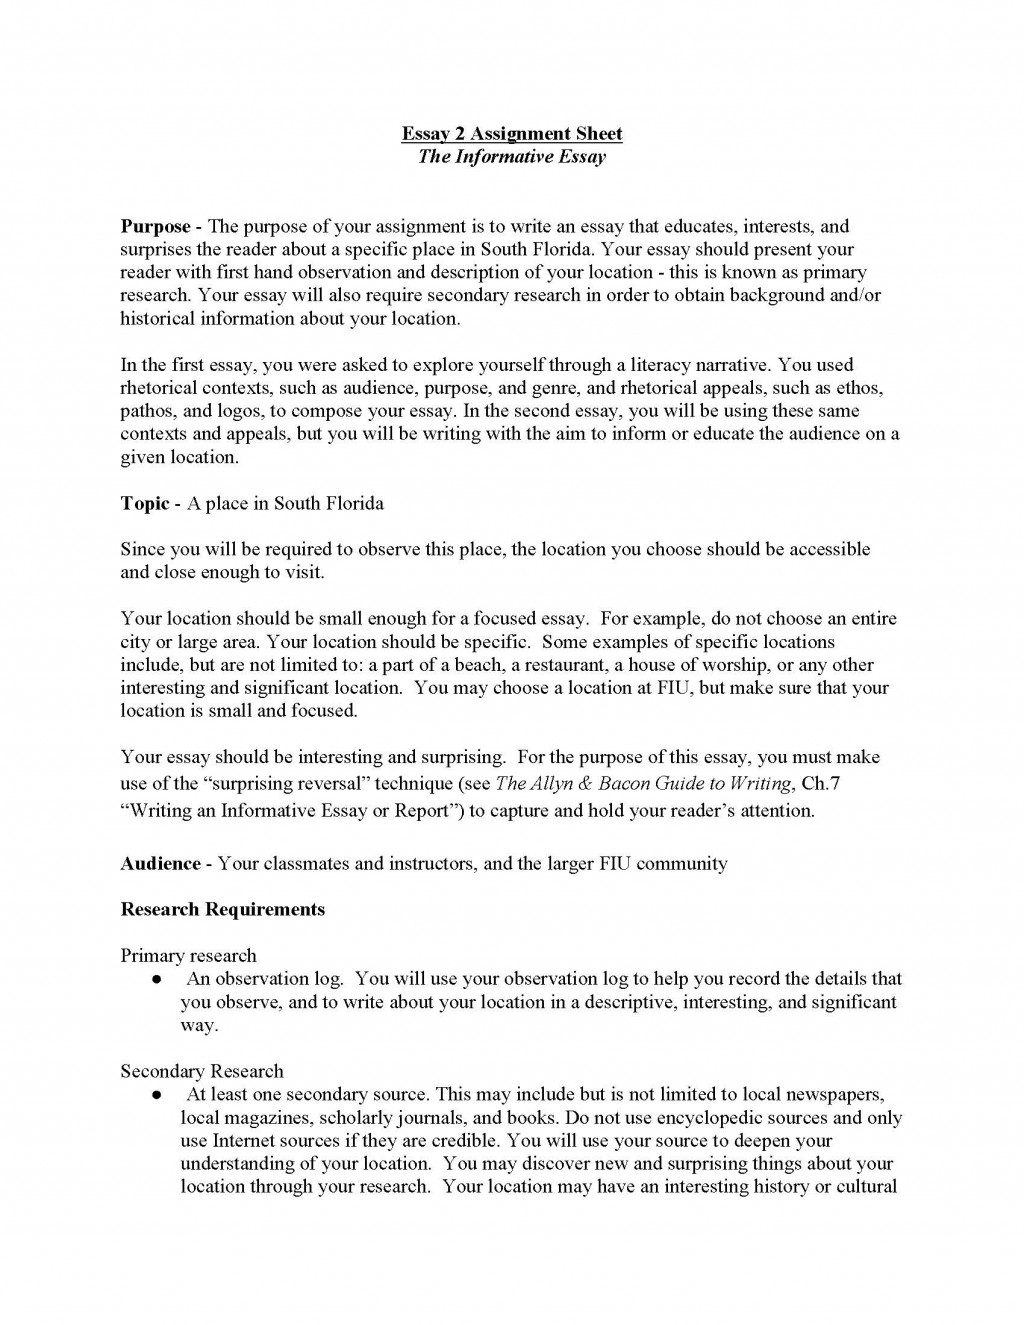 002 Essay Example Informative Topics Unit Assignment Page 1 Remarkable Prompt 4th Grade Prompts For High School Expository College Students Large